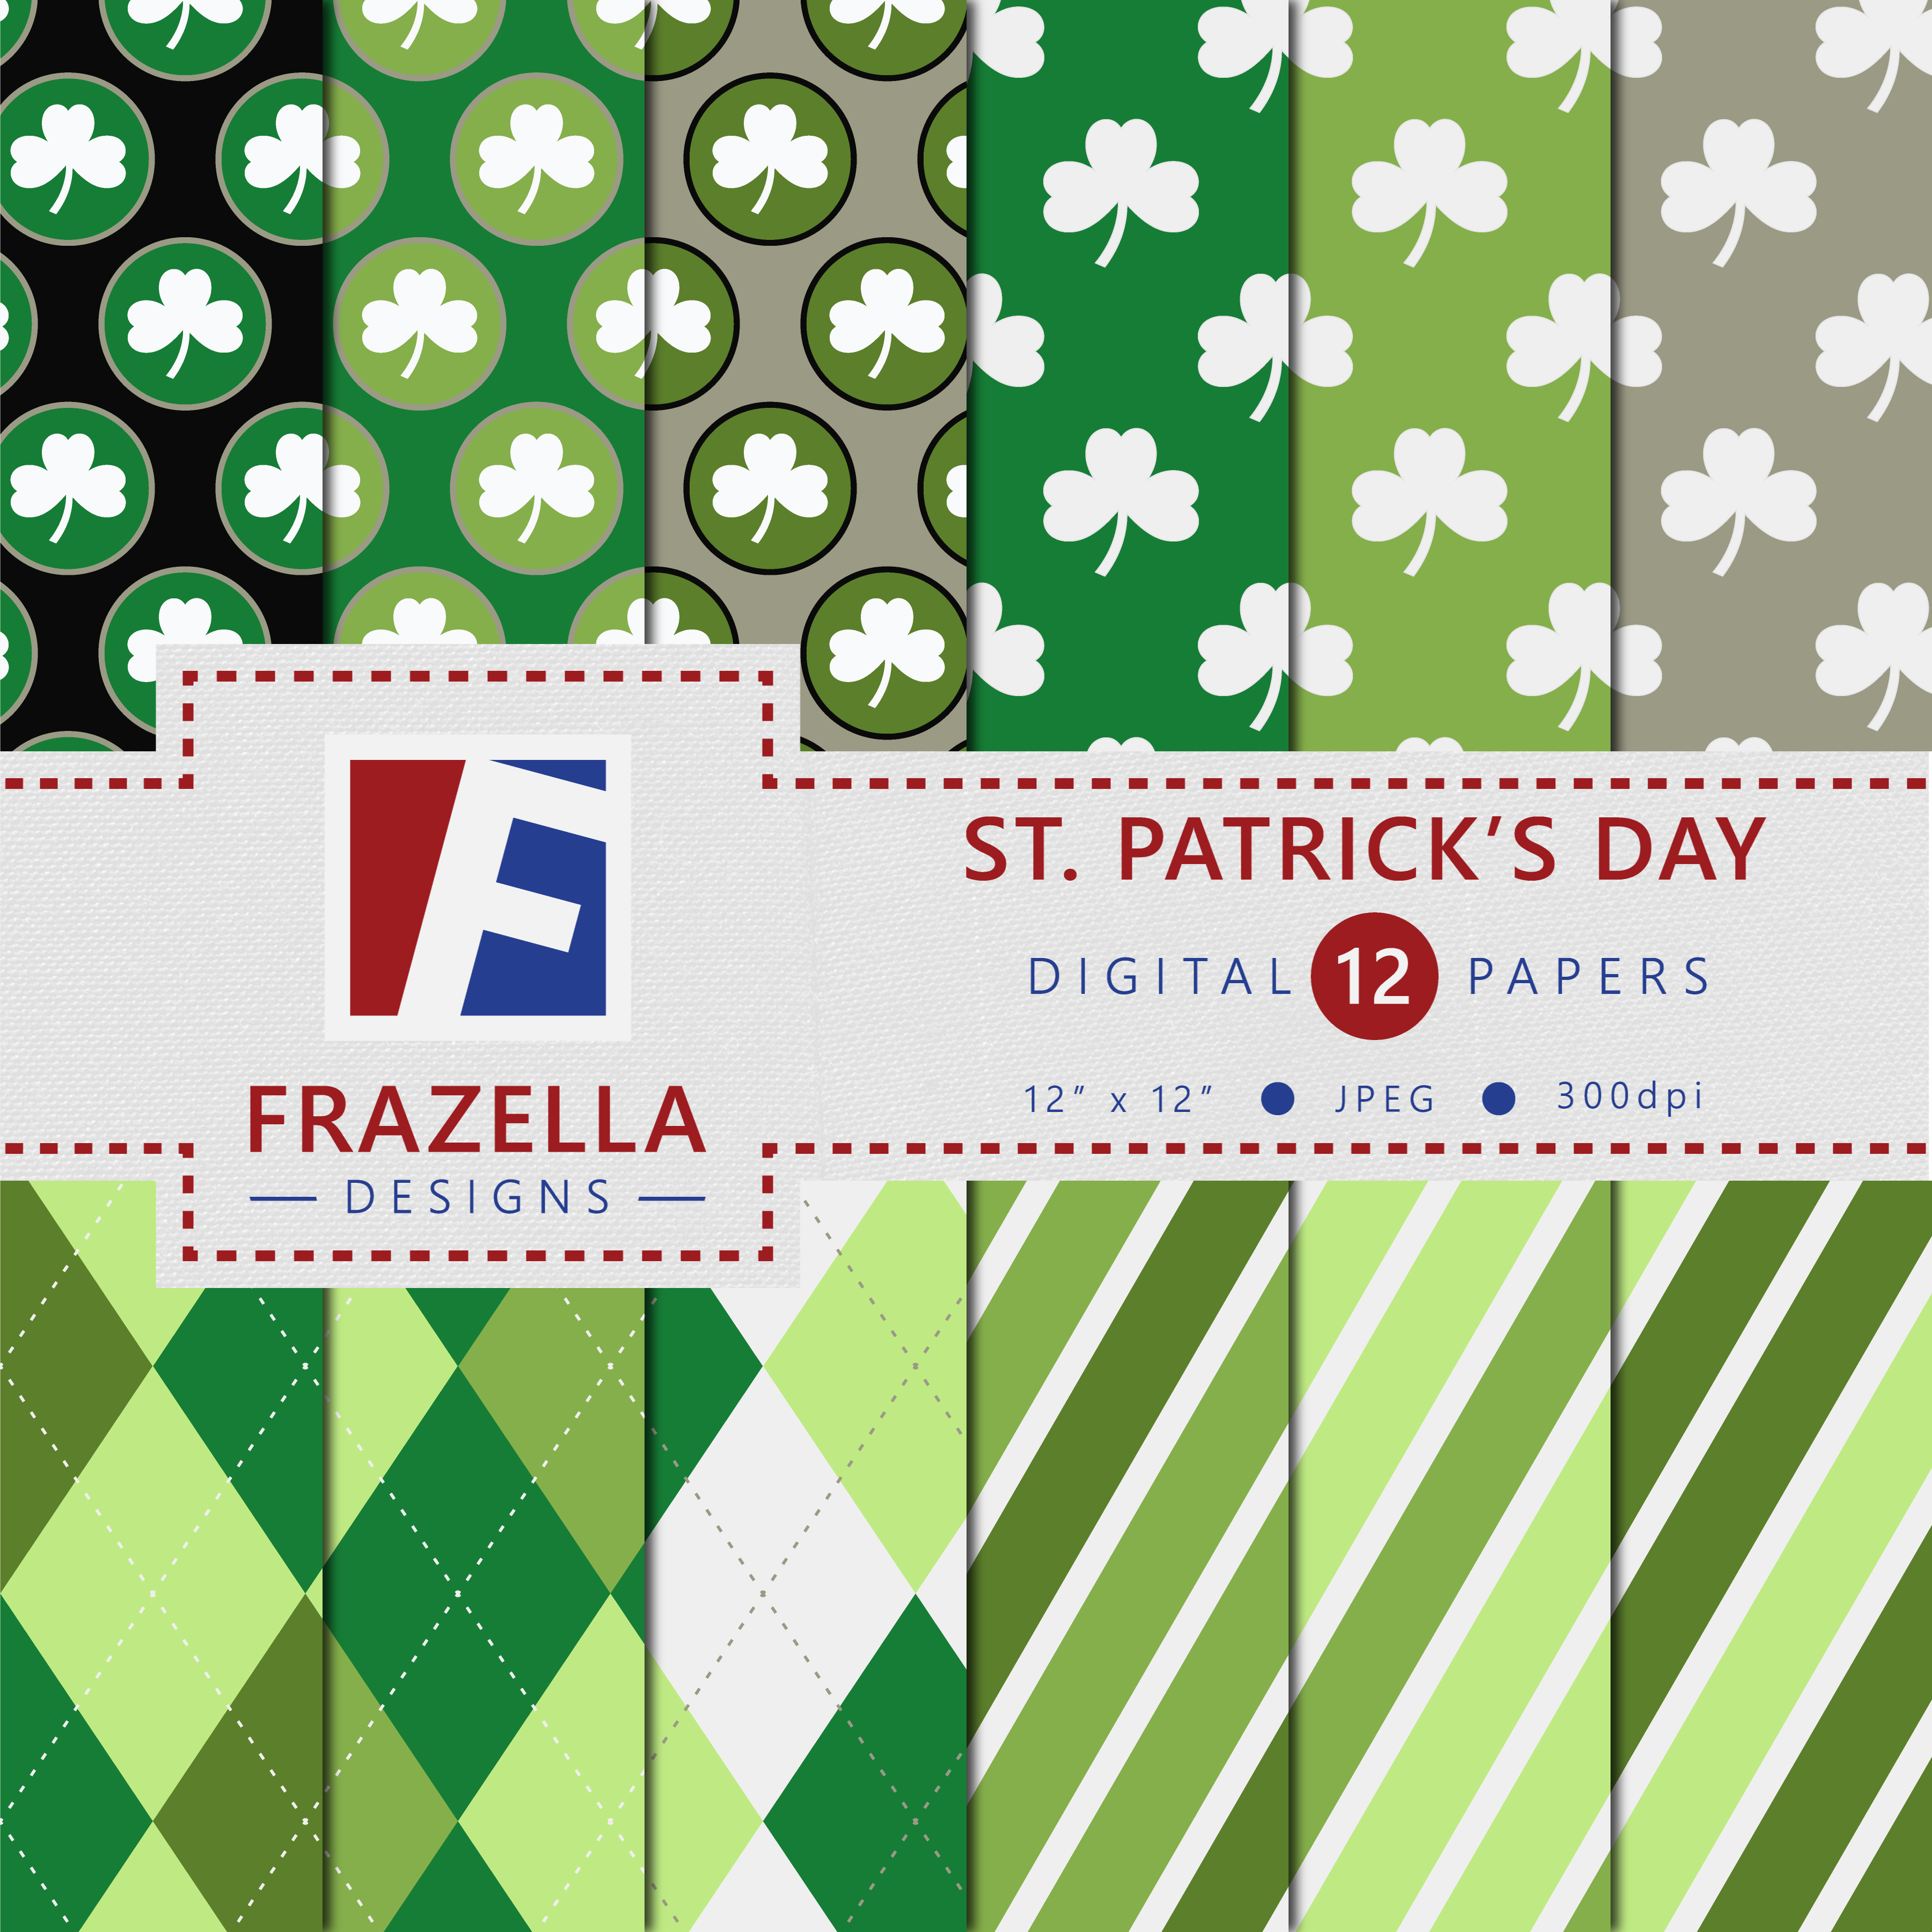 Download Free St Patrick S Day Digital Paper Set Graphic By Frazella Designs for Cricut Explore, Silhouette and other cutting machines.